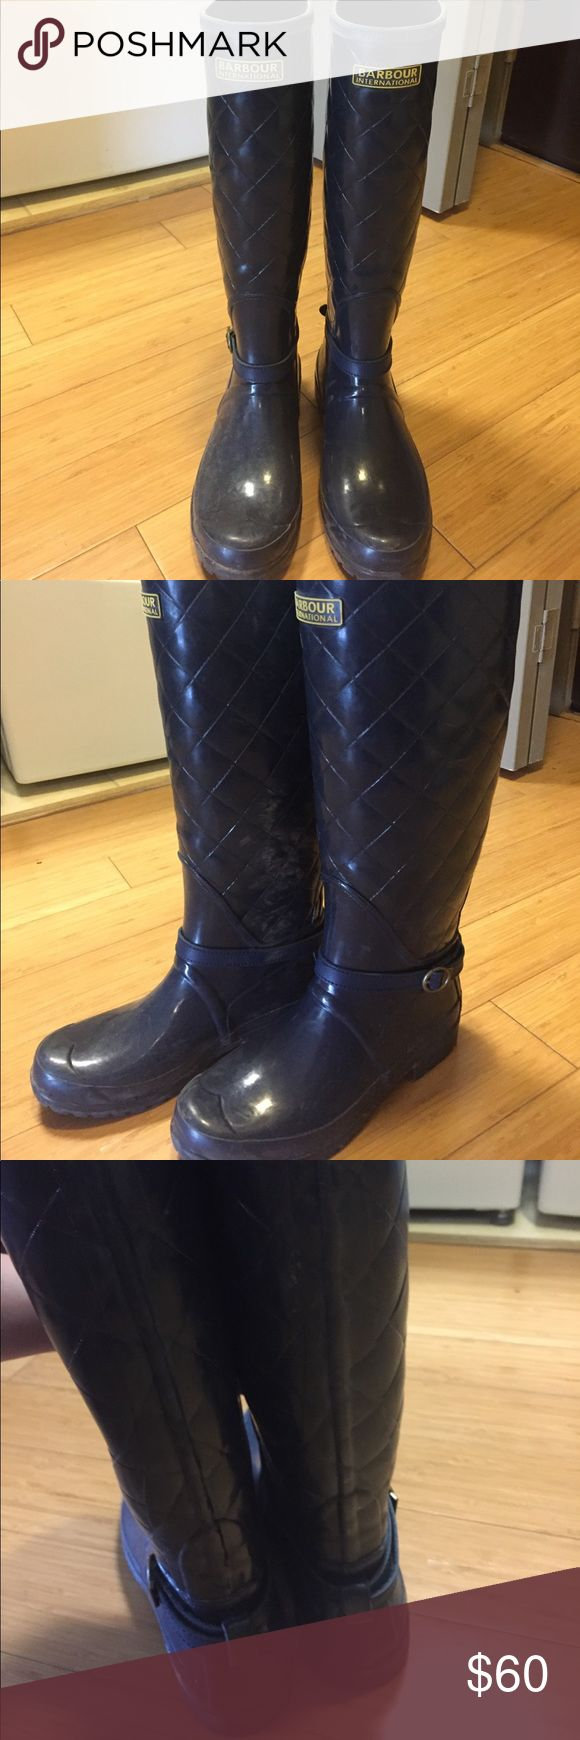 Barbour international navy rain boots Purchased in London Barbour boots for the rain knee height U.K. Size 5 only worn 2 times I am a 9 and these shoes seem to be around a US 8.5 Barbour Shoes Winter & Rain Boots